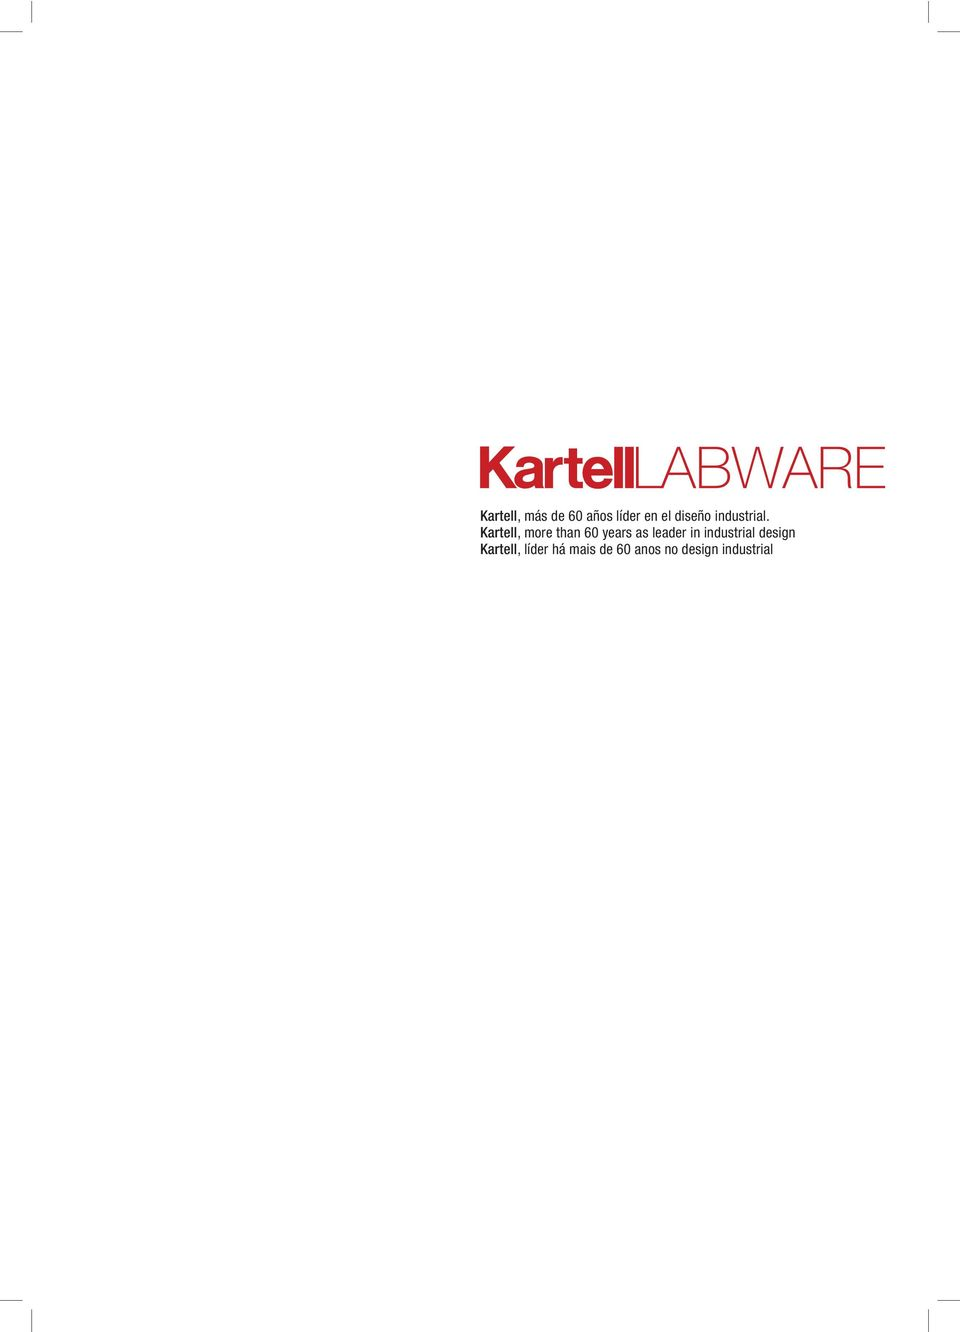 Kartell, more than 60 years as leader in